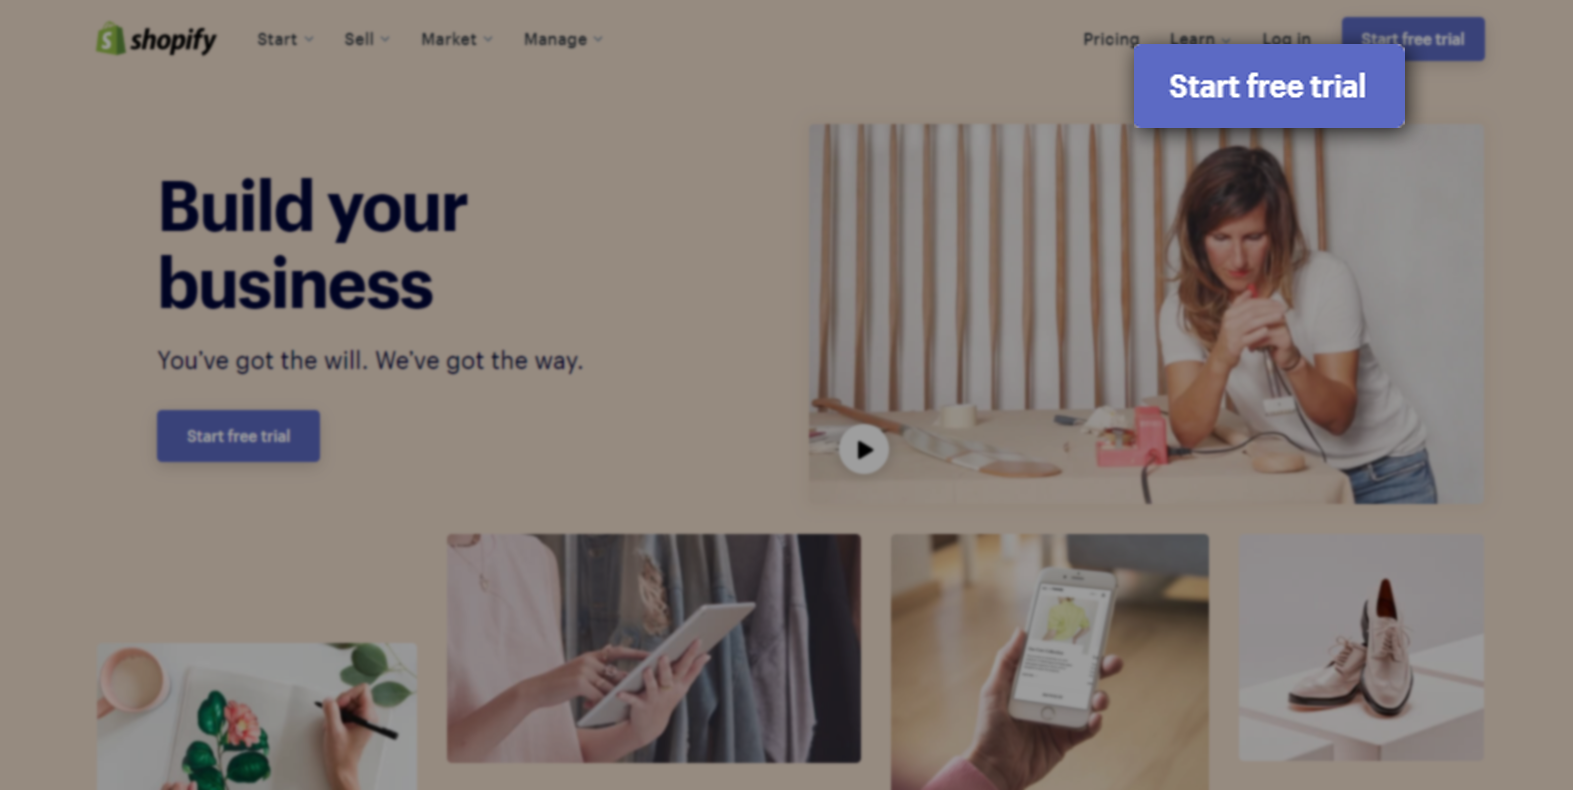 Start Your Business with Shopify 14-day Free Trial